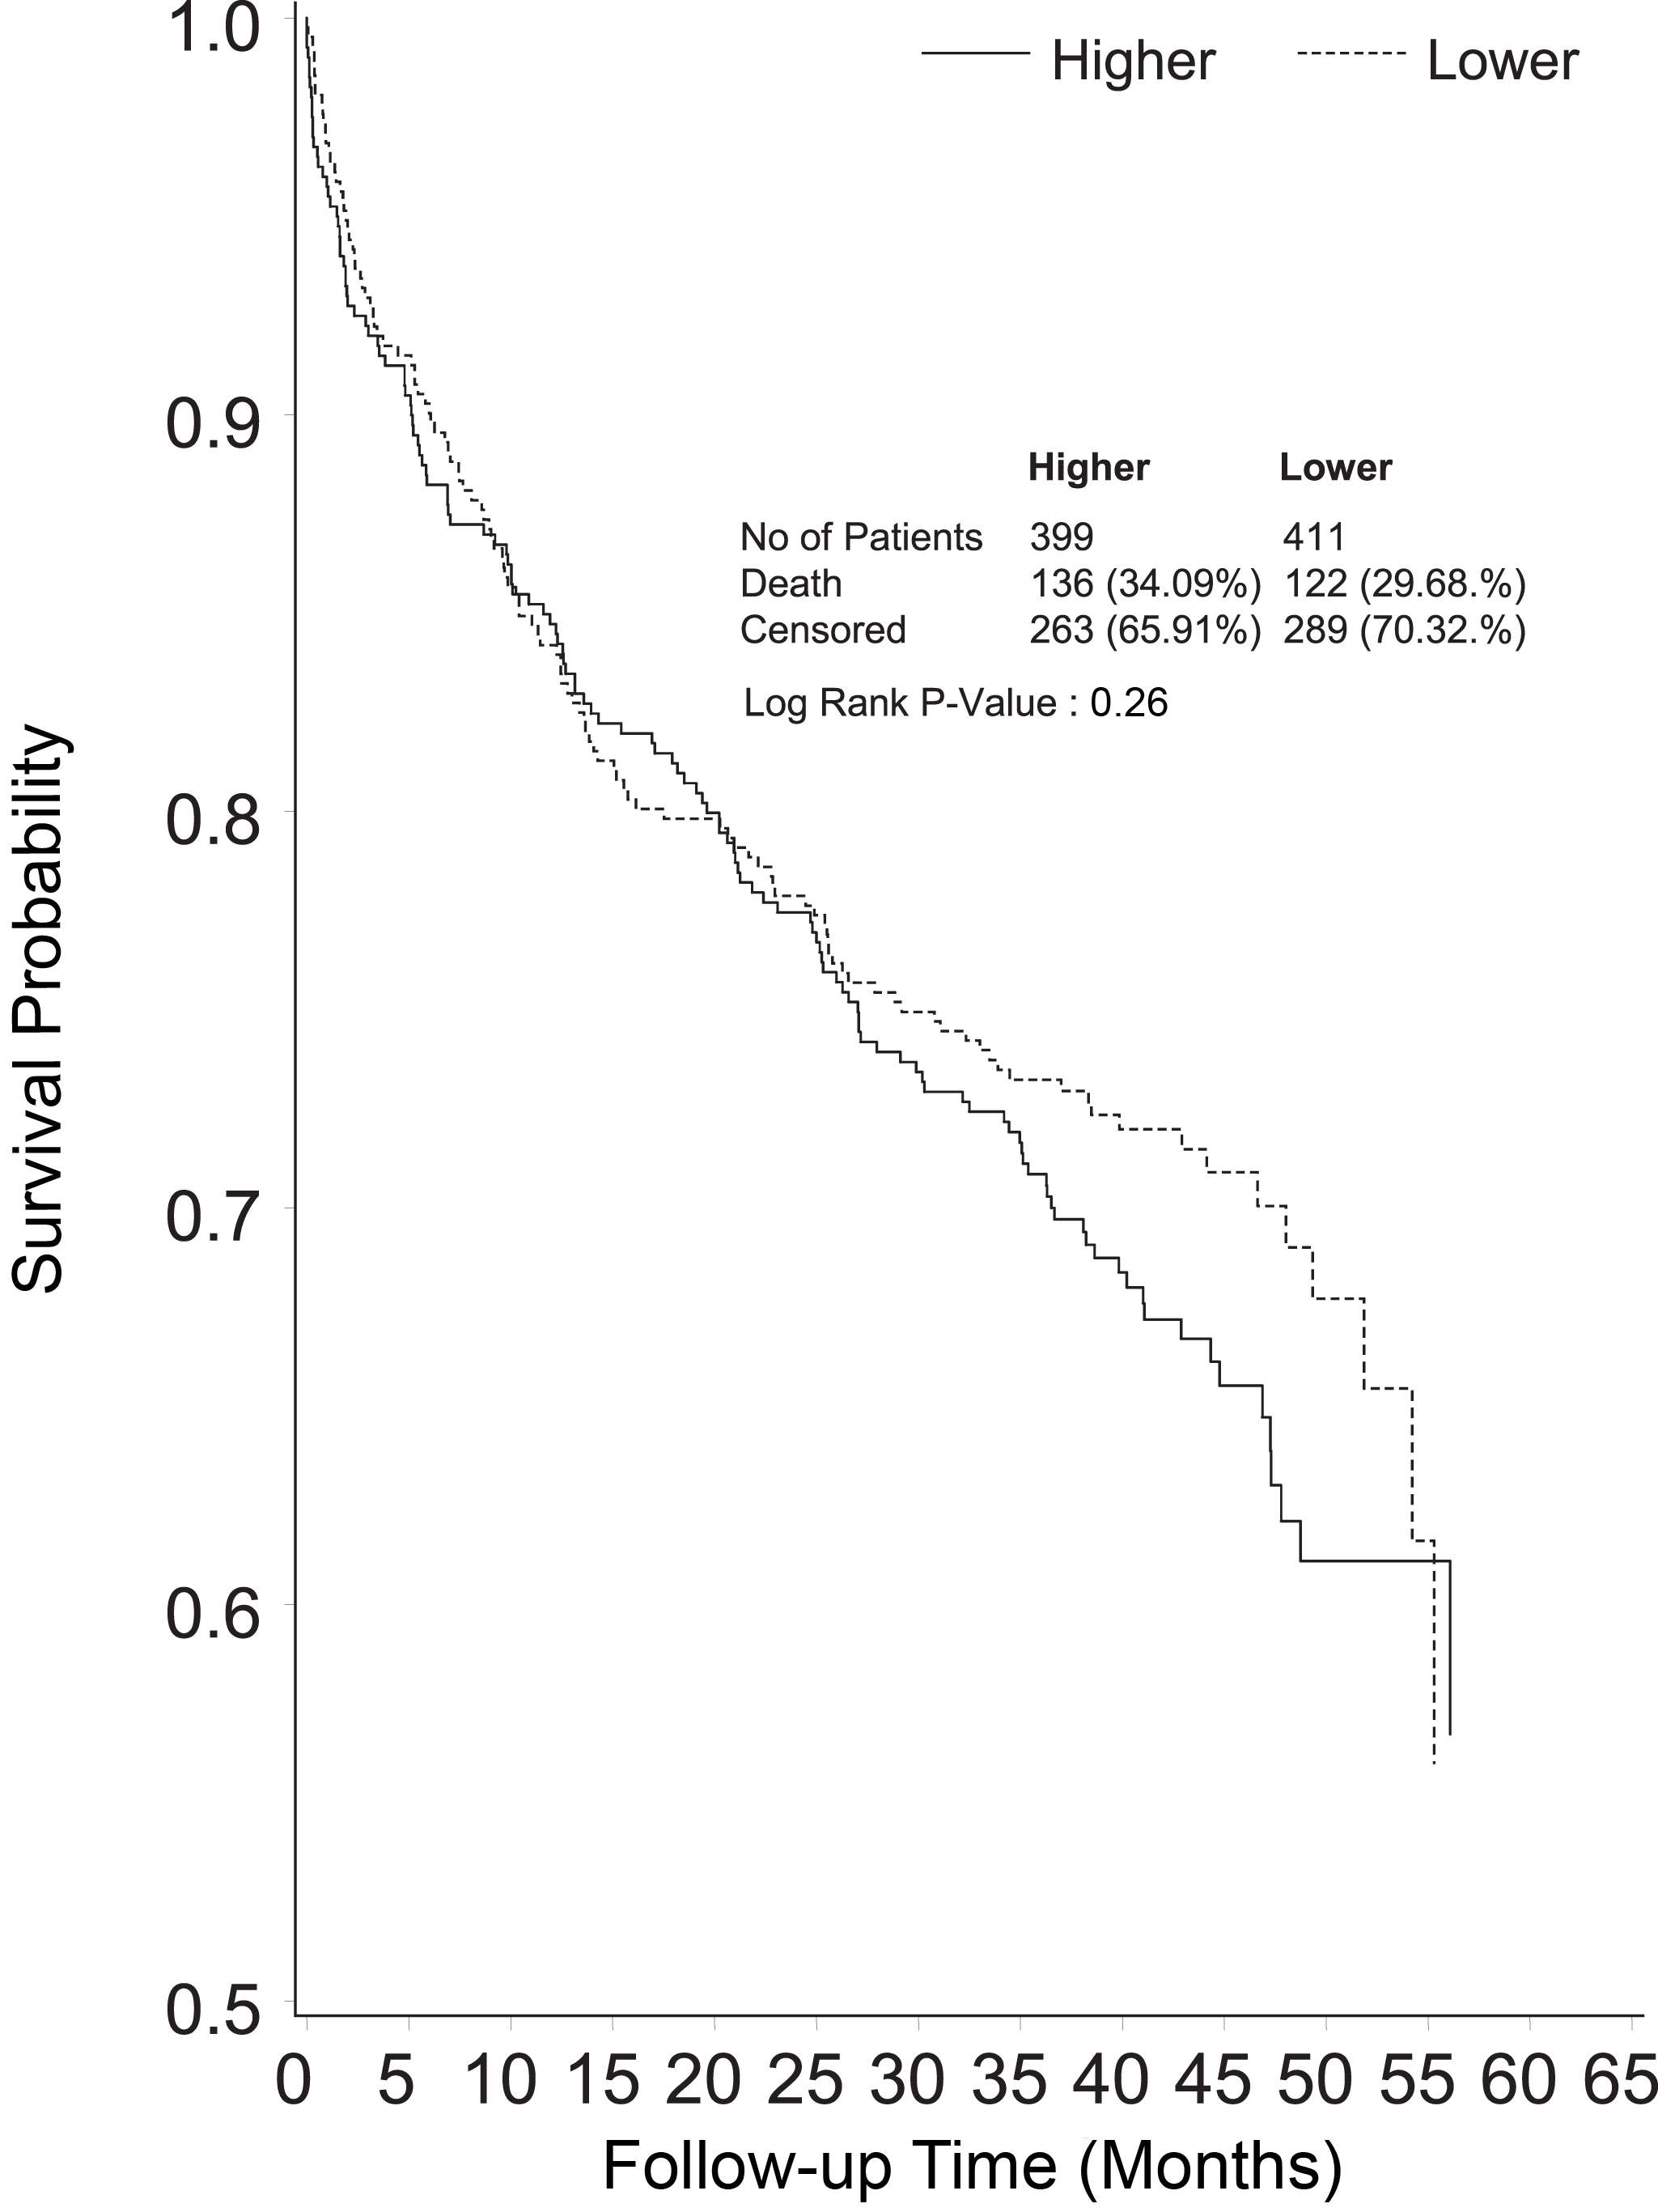 Kaplan-Meier survival curve censoring deaths before day 90 of follow-up (end point of the RENAL Study follow-up), shown by treatment group.